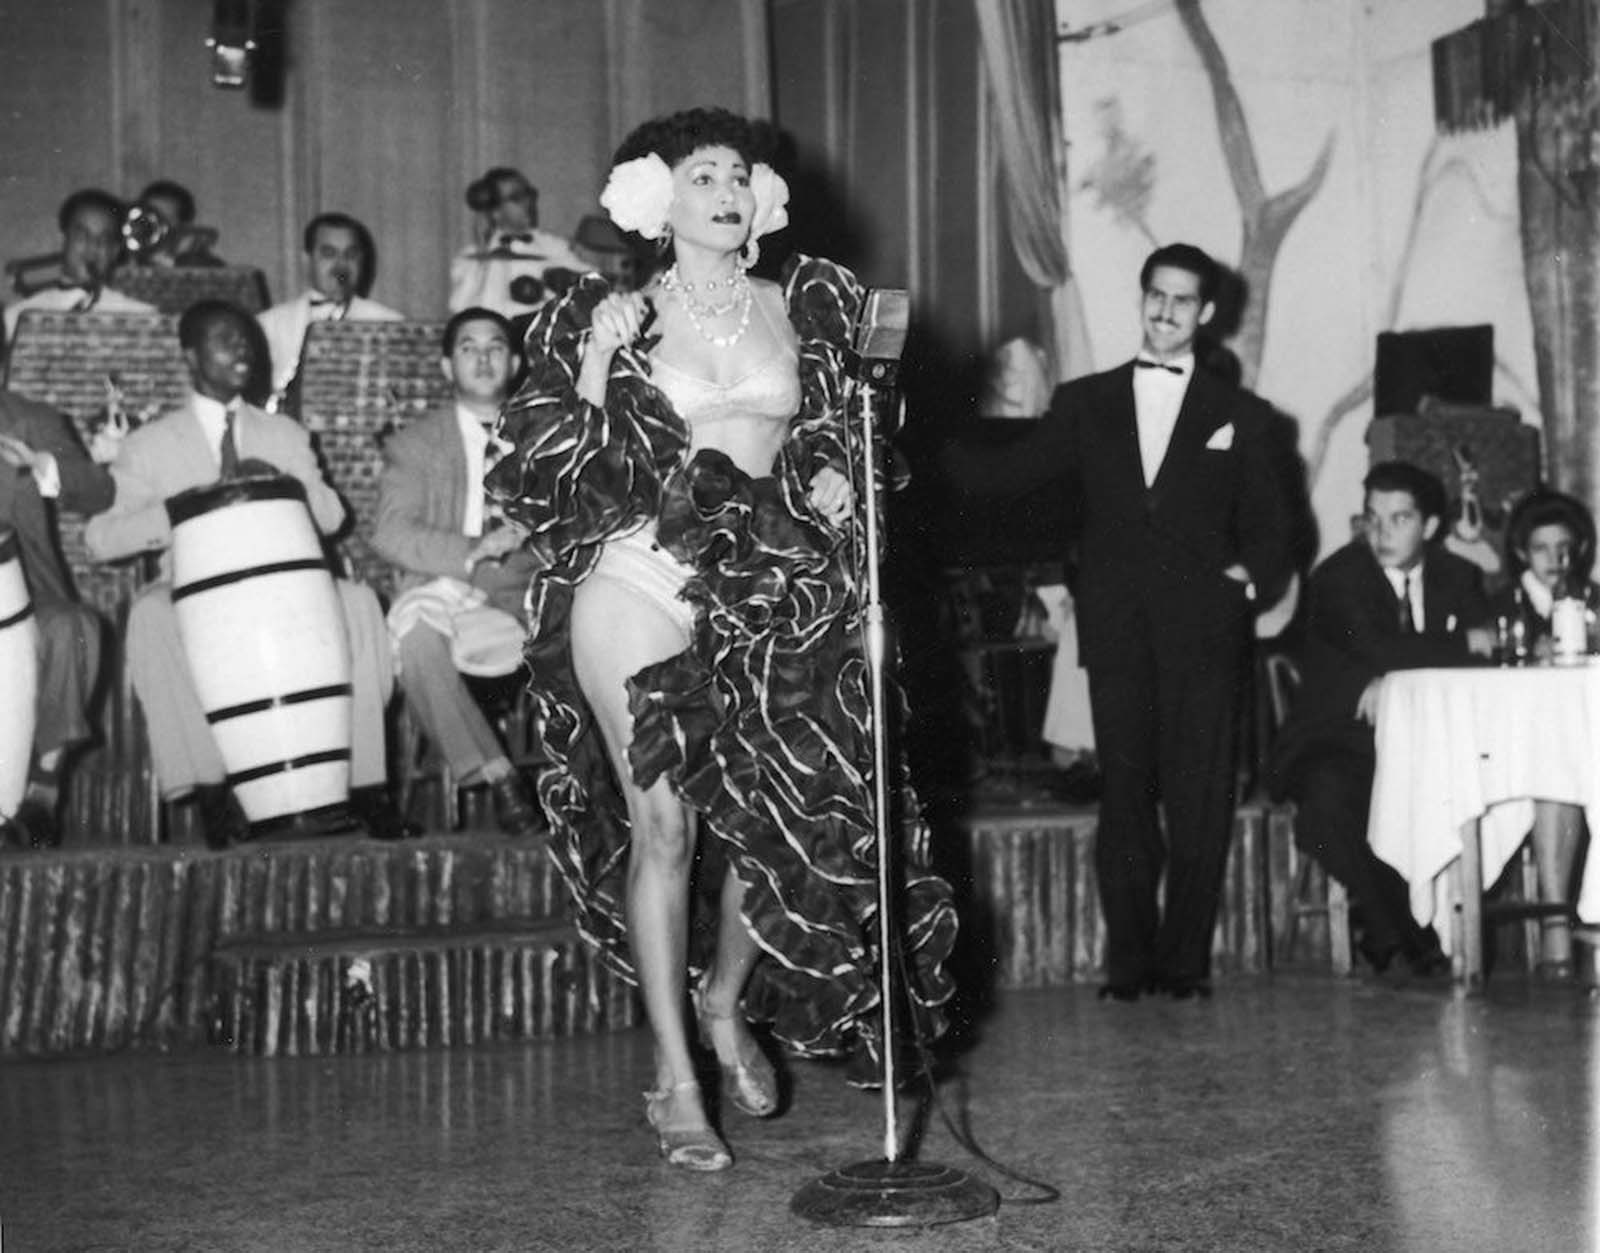 A Cuban rhumba dancer named Zulema performs on stage with a band at the Zombie Club on Zulueta Street in Havana. 1946.